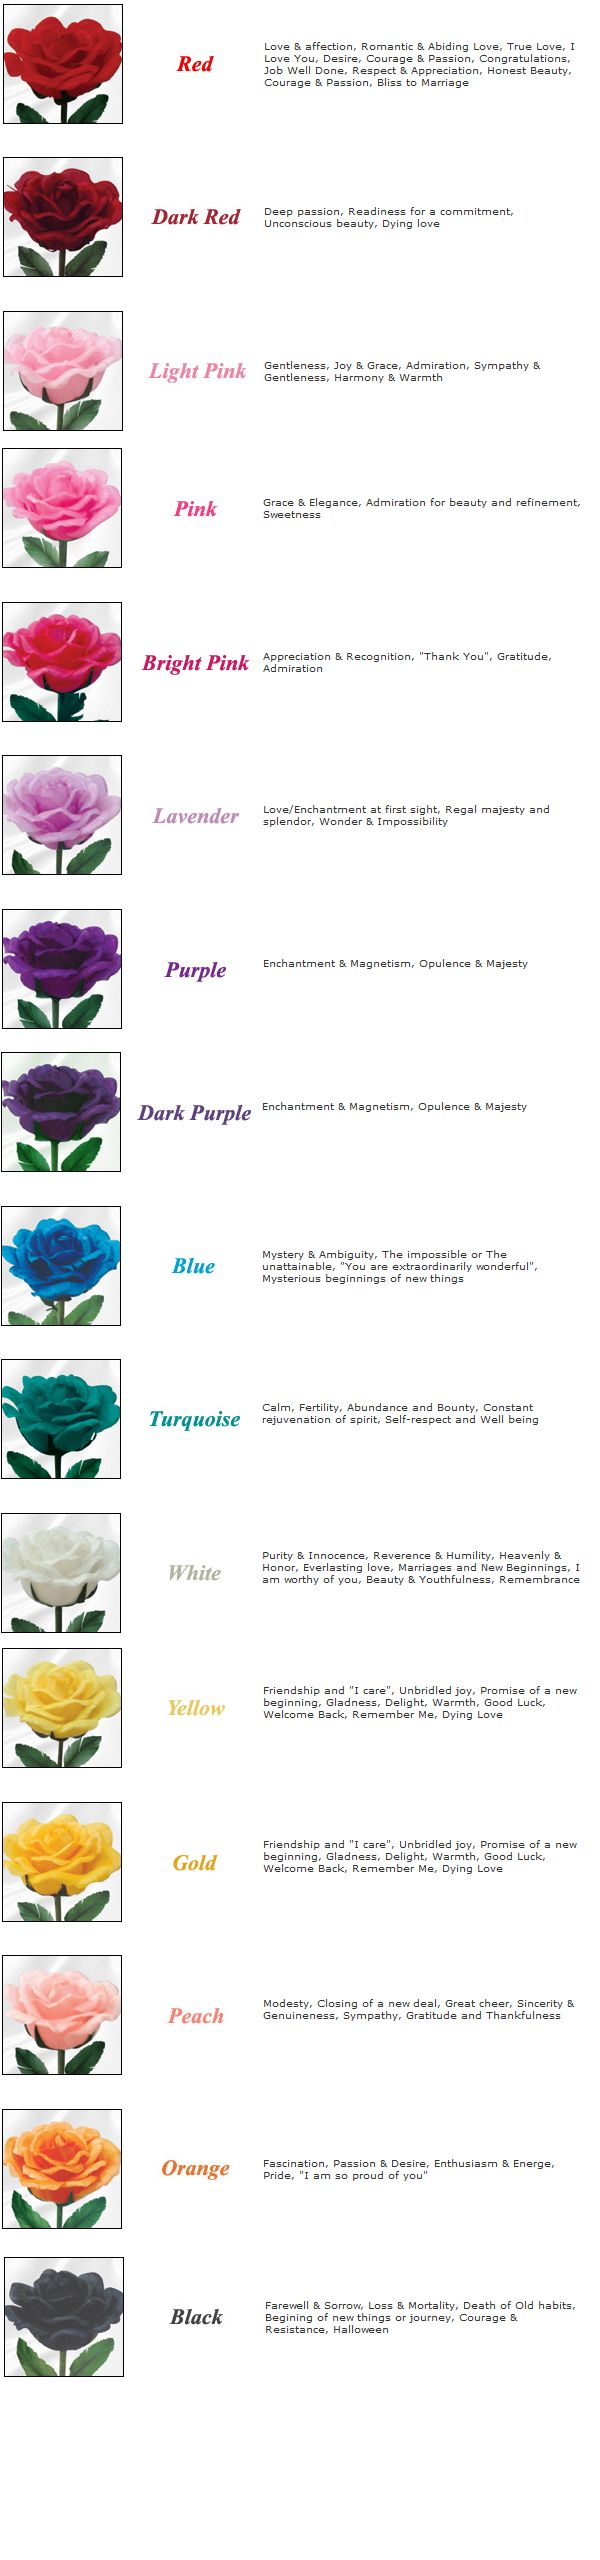 rose_color_meanings_by_kawaii_panda_aru524-d4qckyb.png 600×2,560 pixels